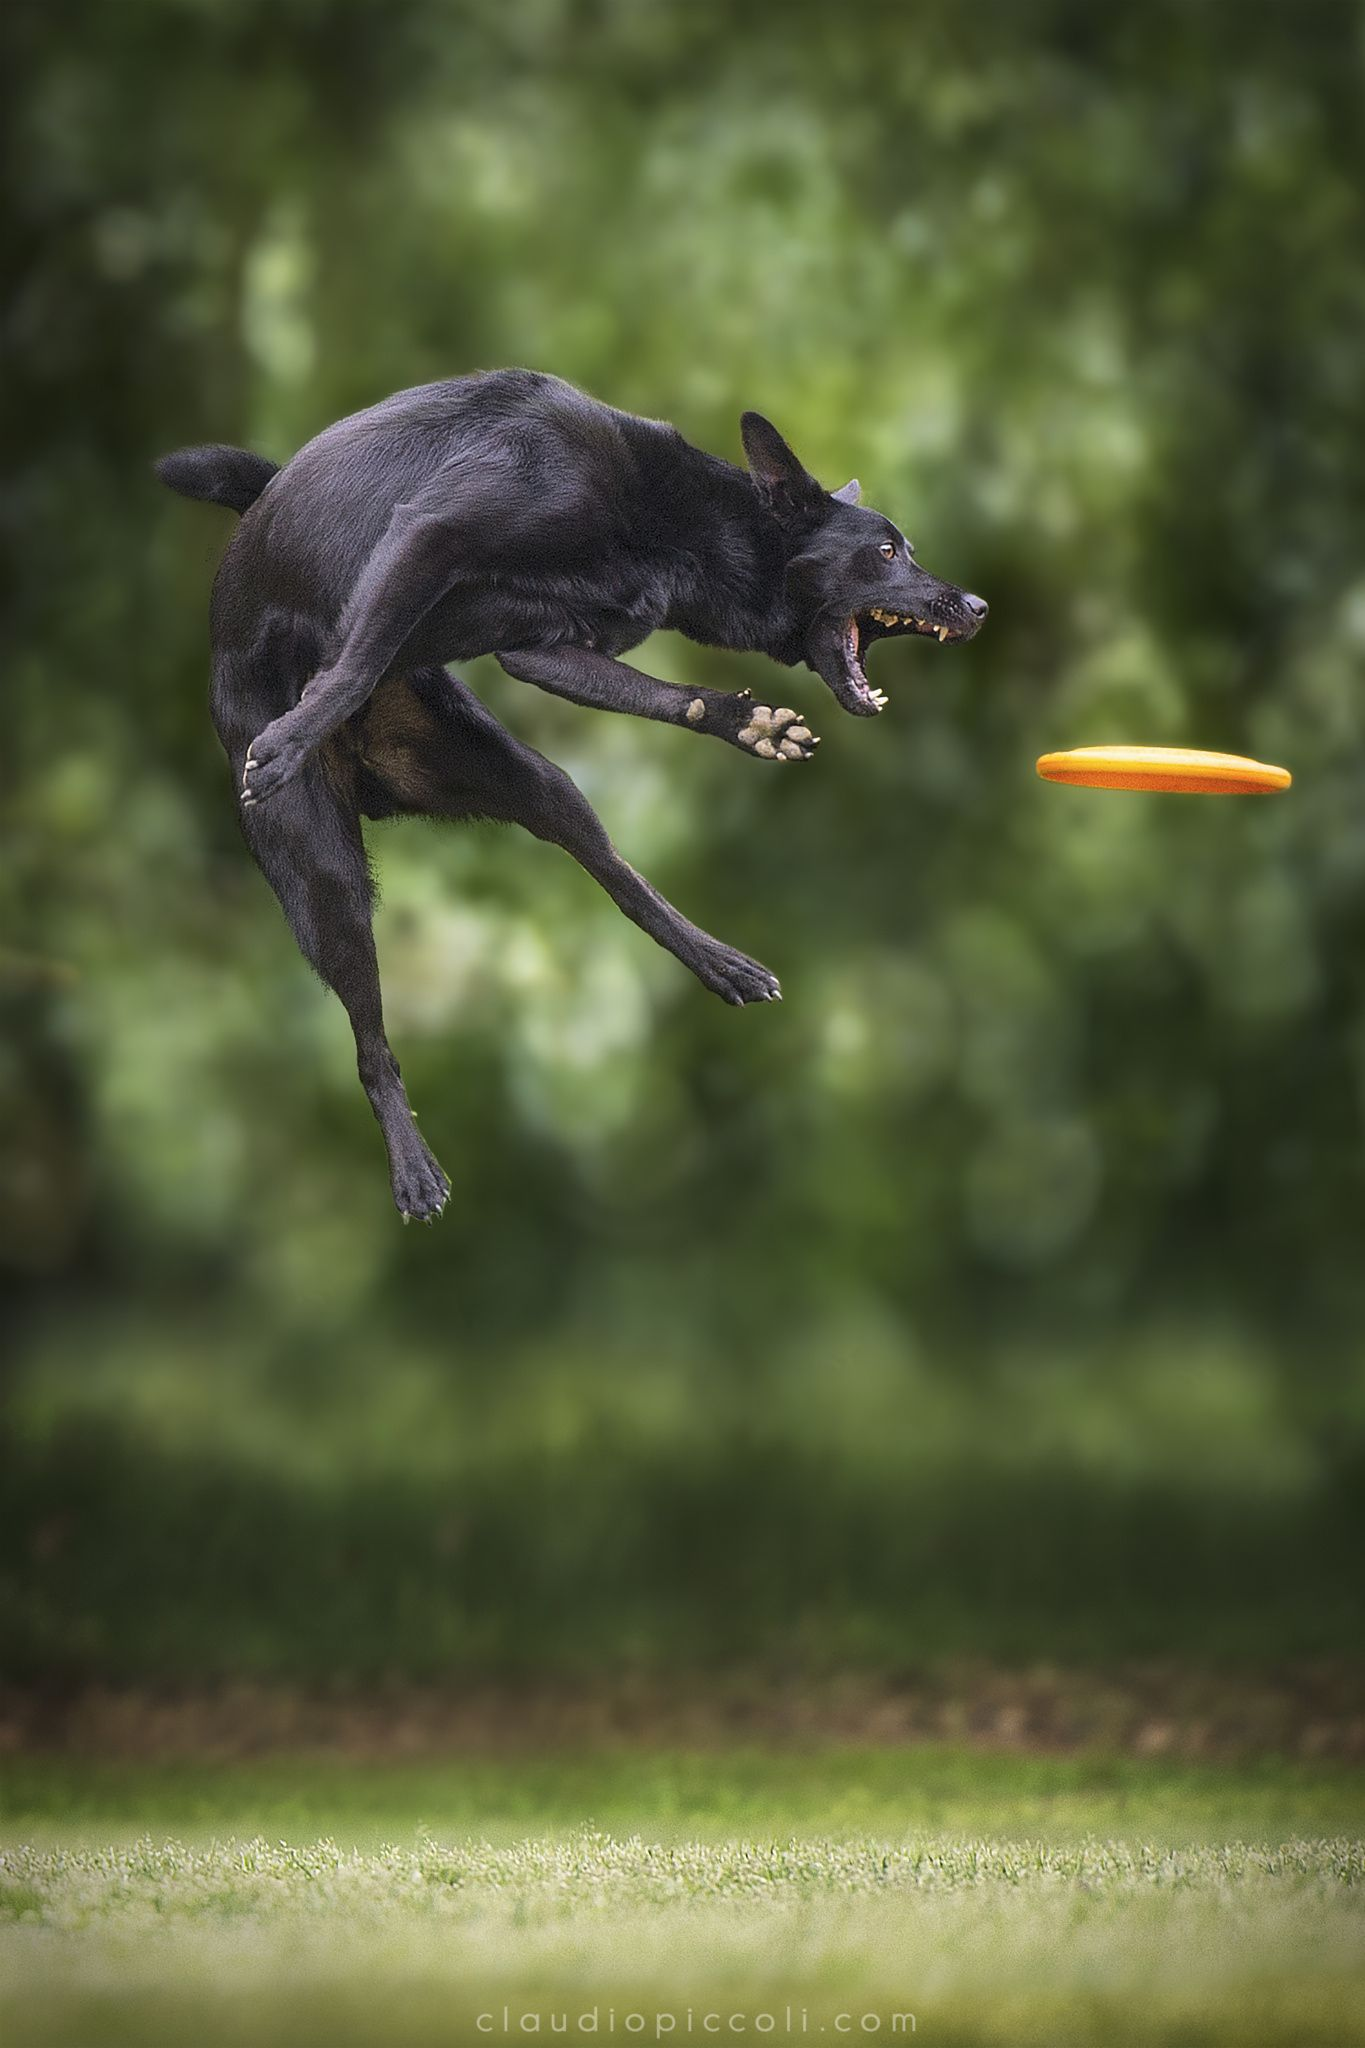 Kelpie Style - A Kelpie during a Disc Dog training session